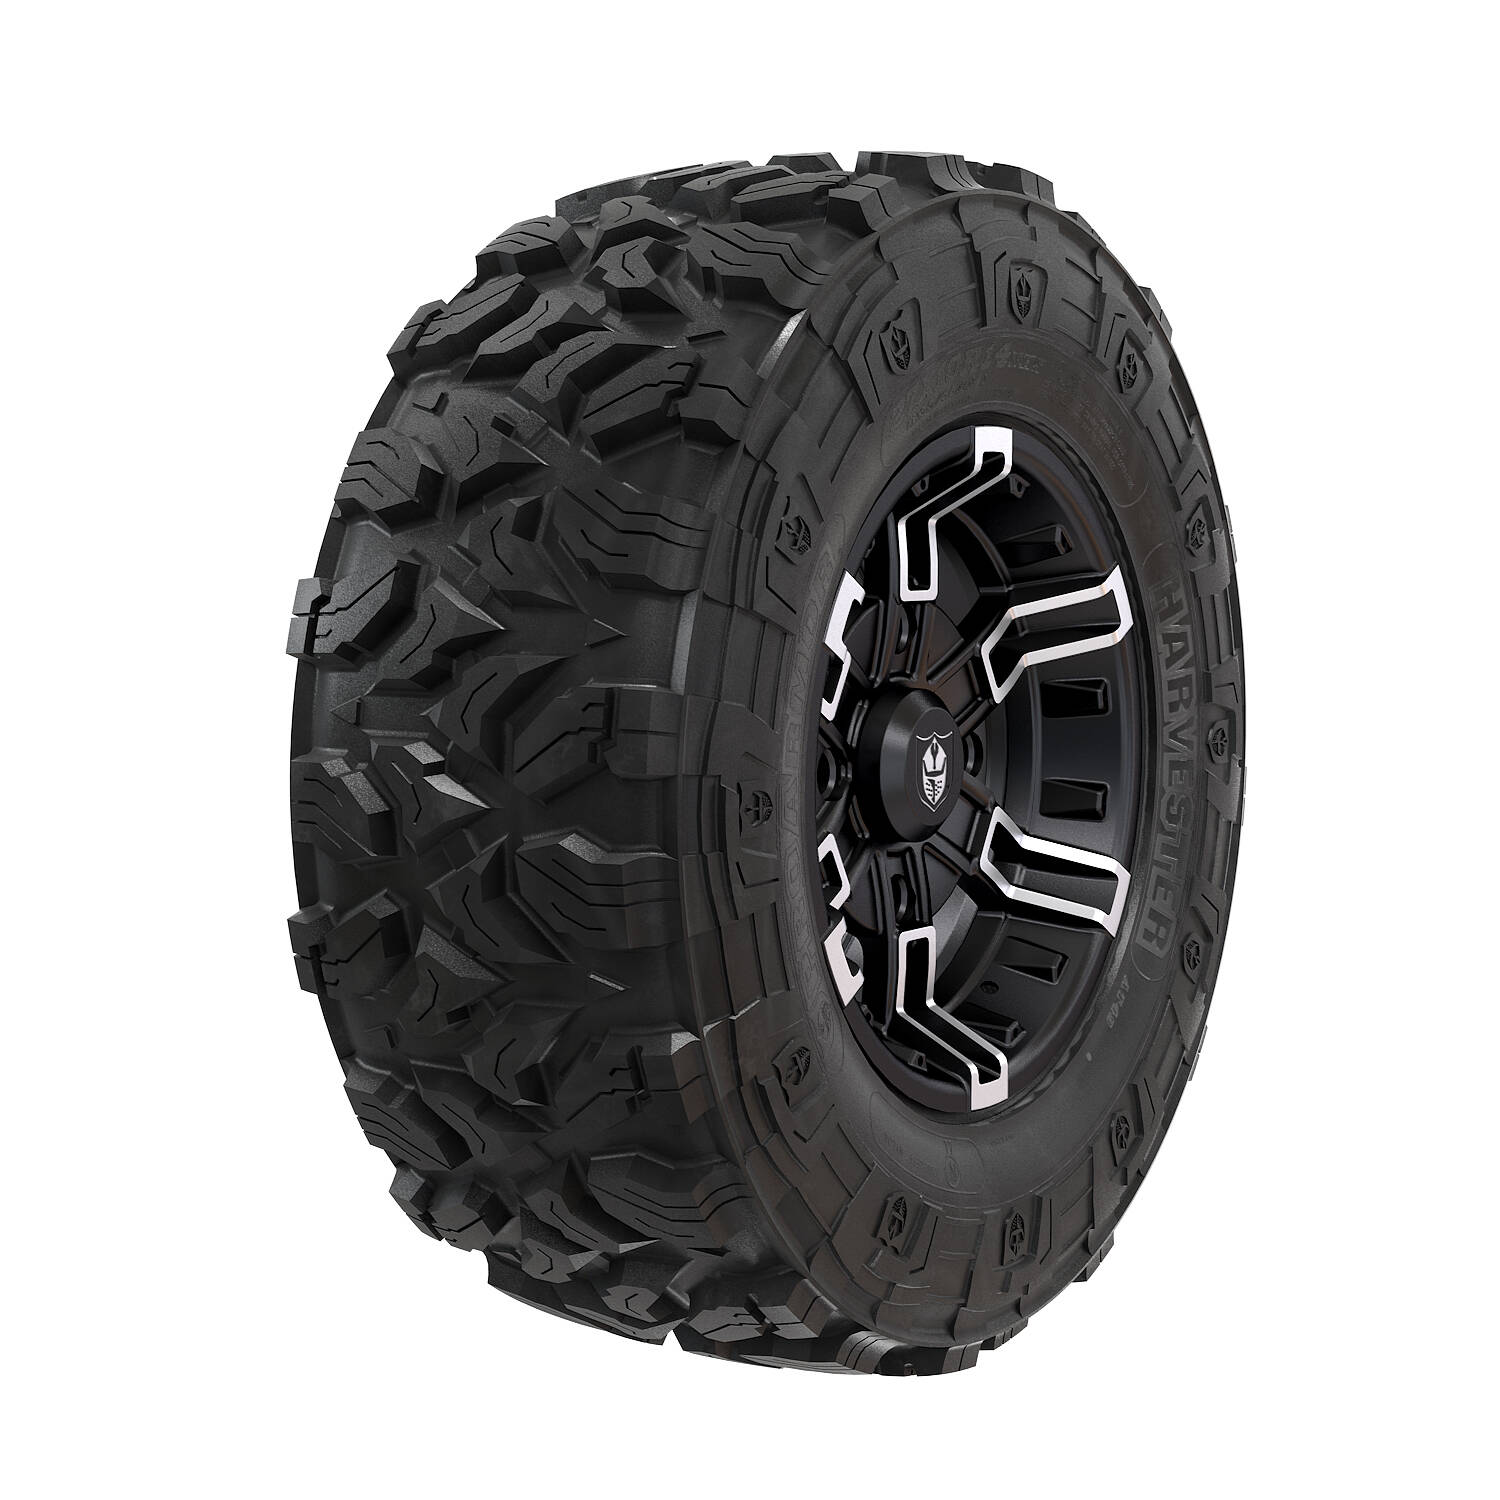 Wheel & Tire Set: Pro Armor Harvester® & Buckle - Accent - 28""